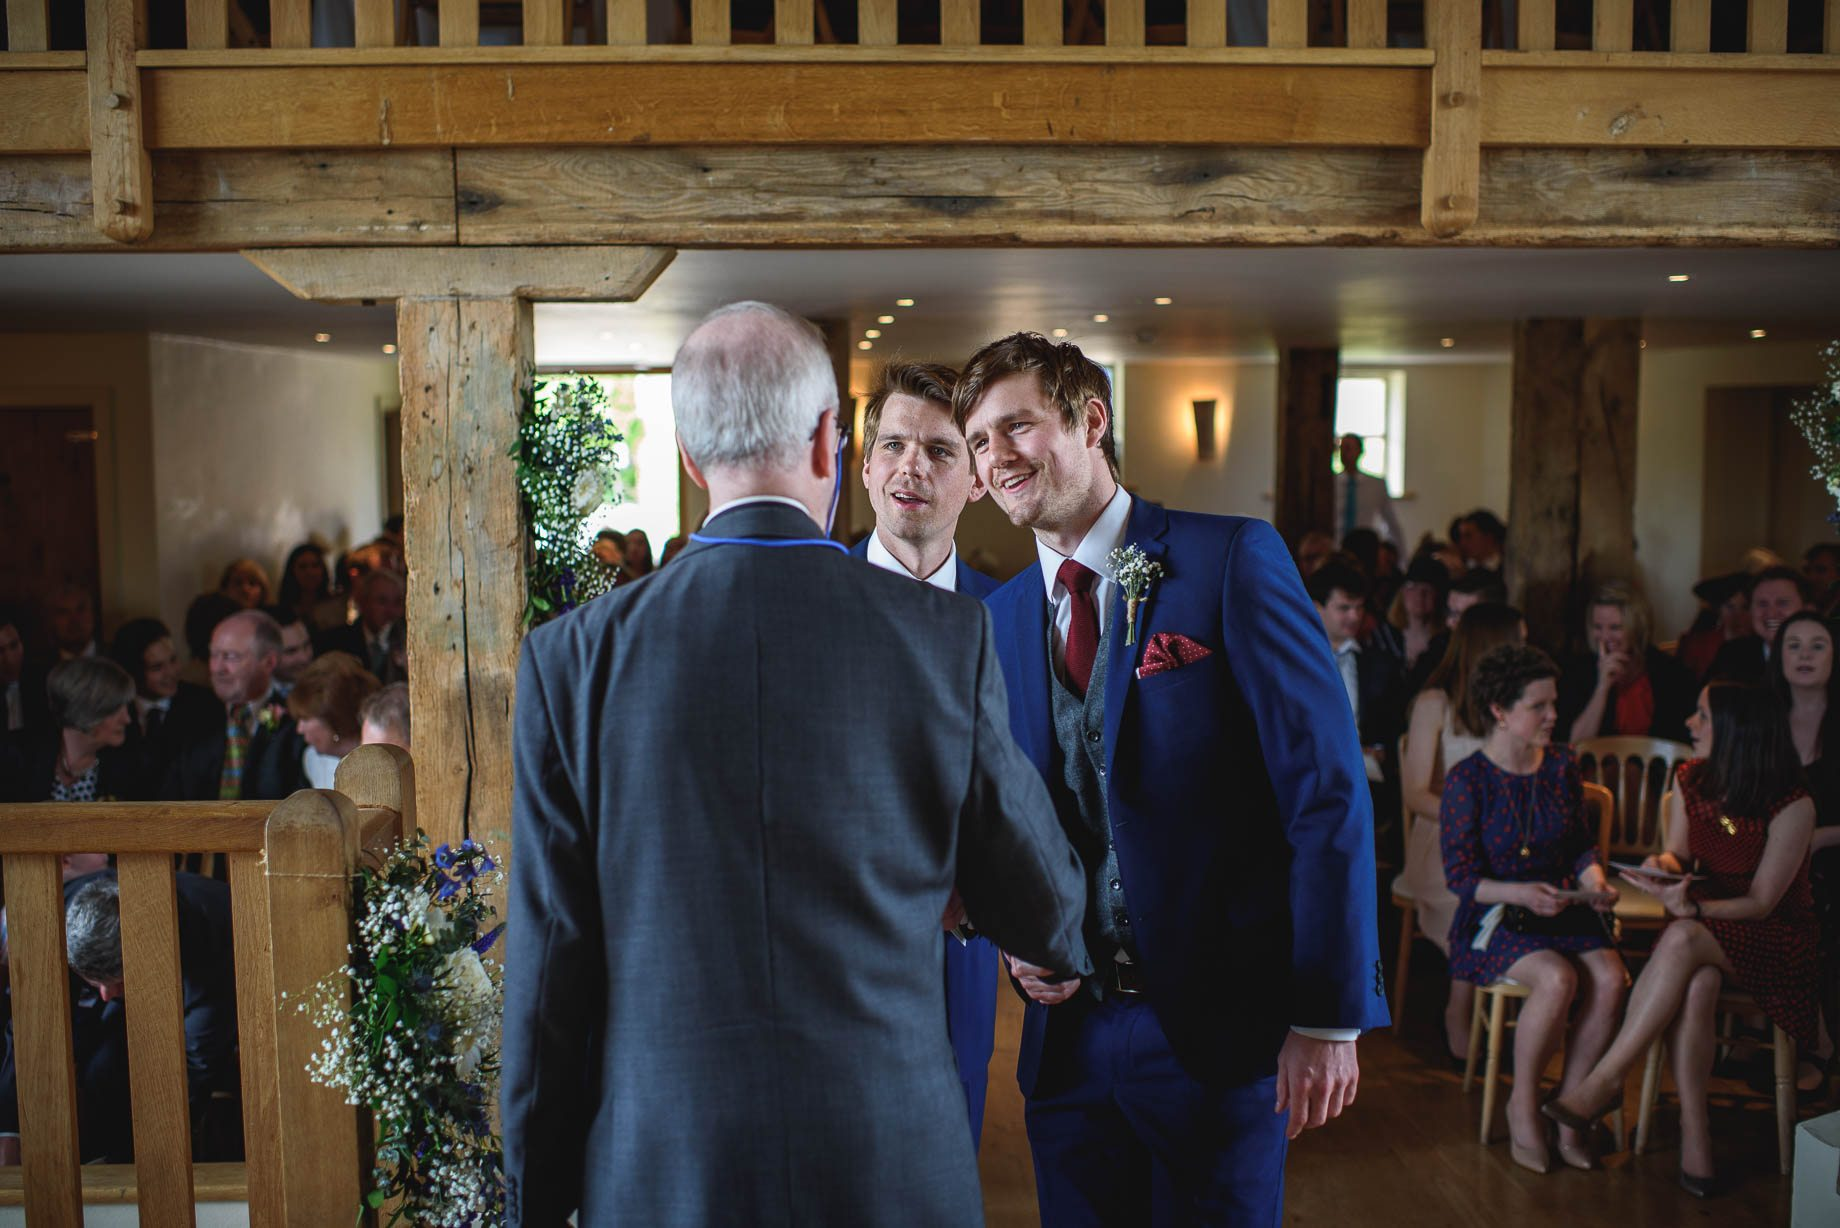 Bury Court Barn wedding photography by Guy Collier - Heather and Pat (27 of 170)